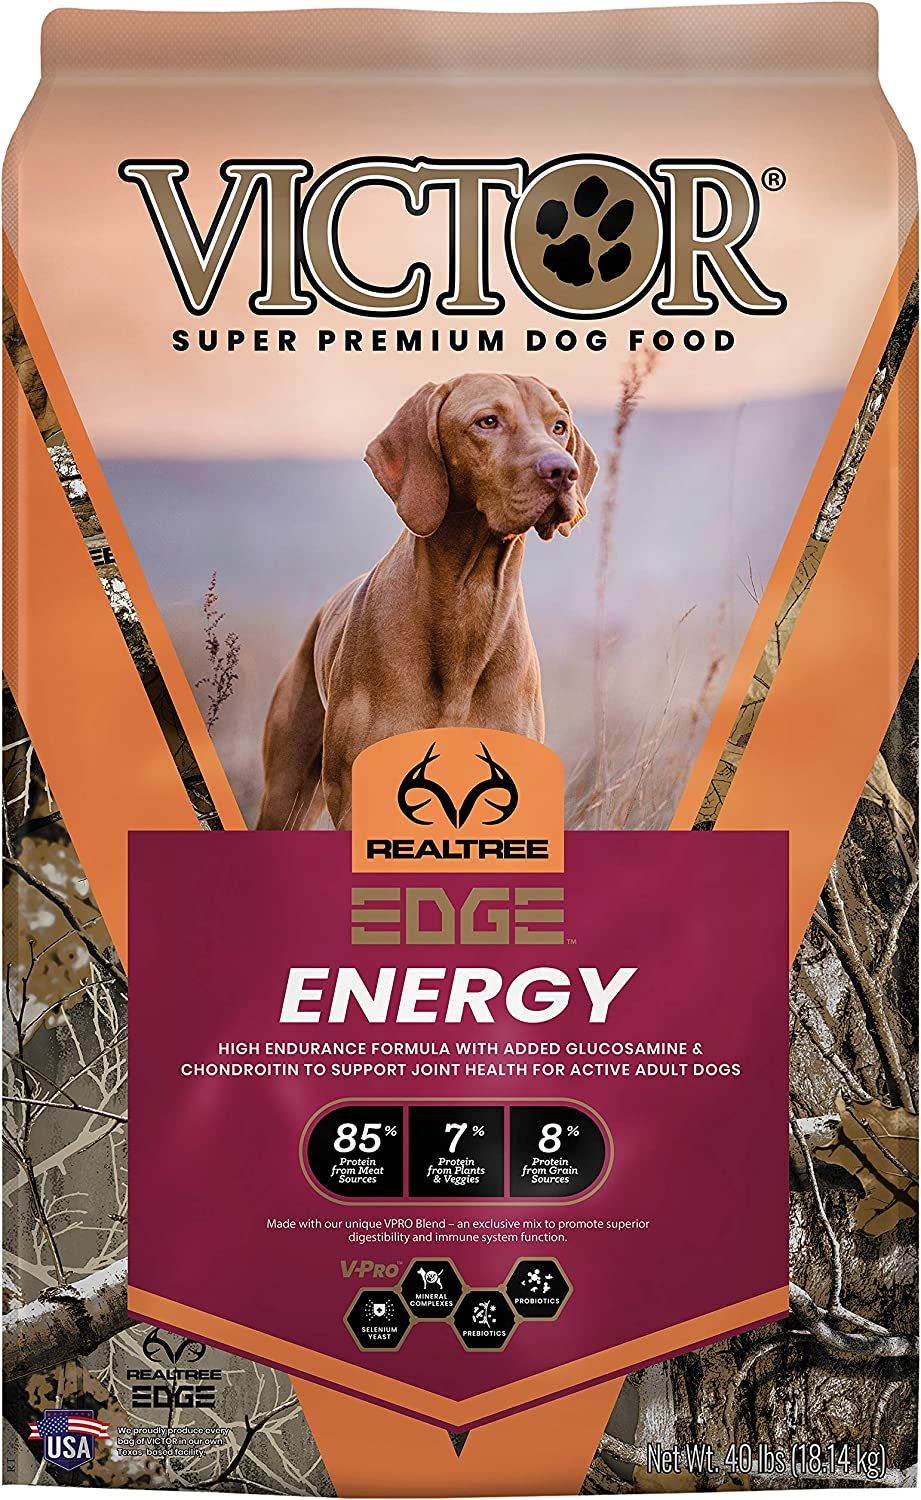 VICTOR REALTREE EDGE ENERGY, Dry Dog Food